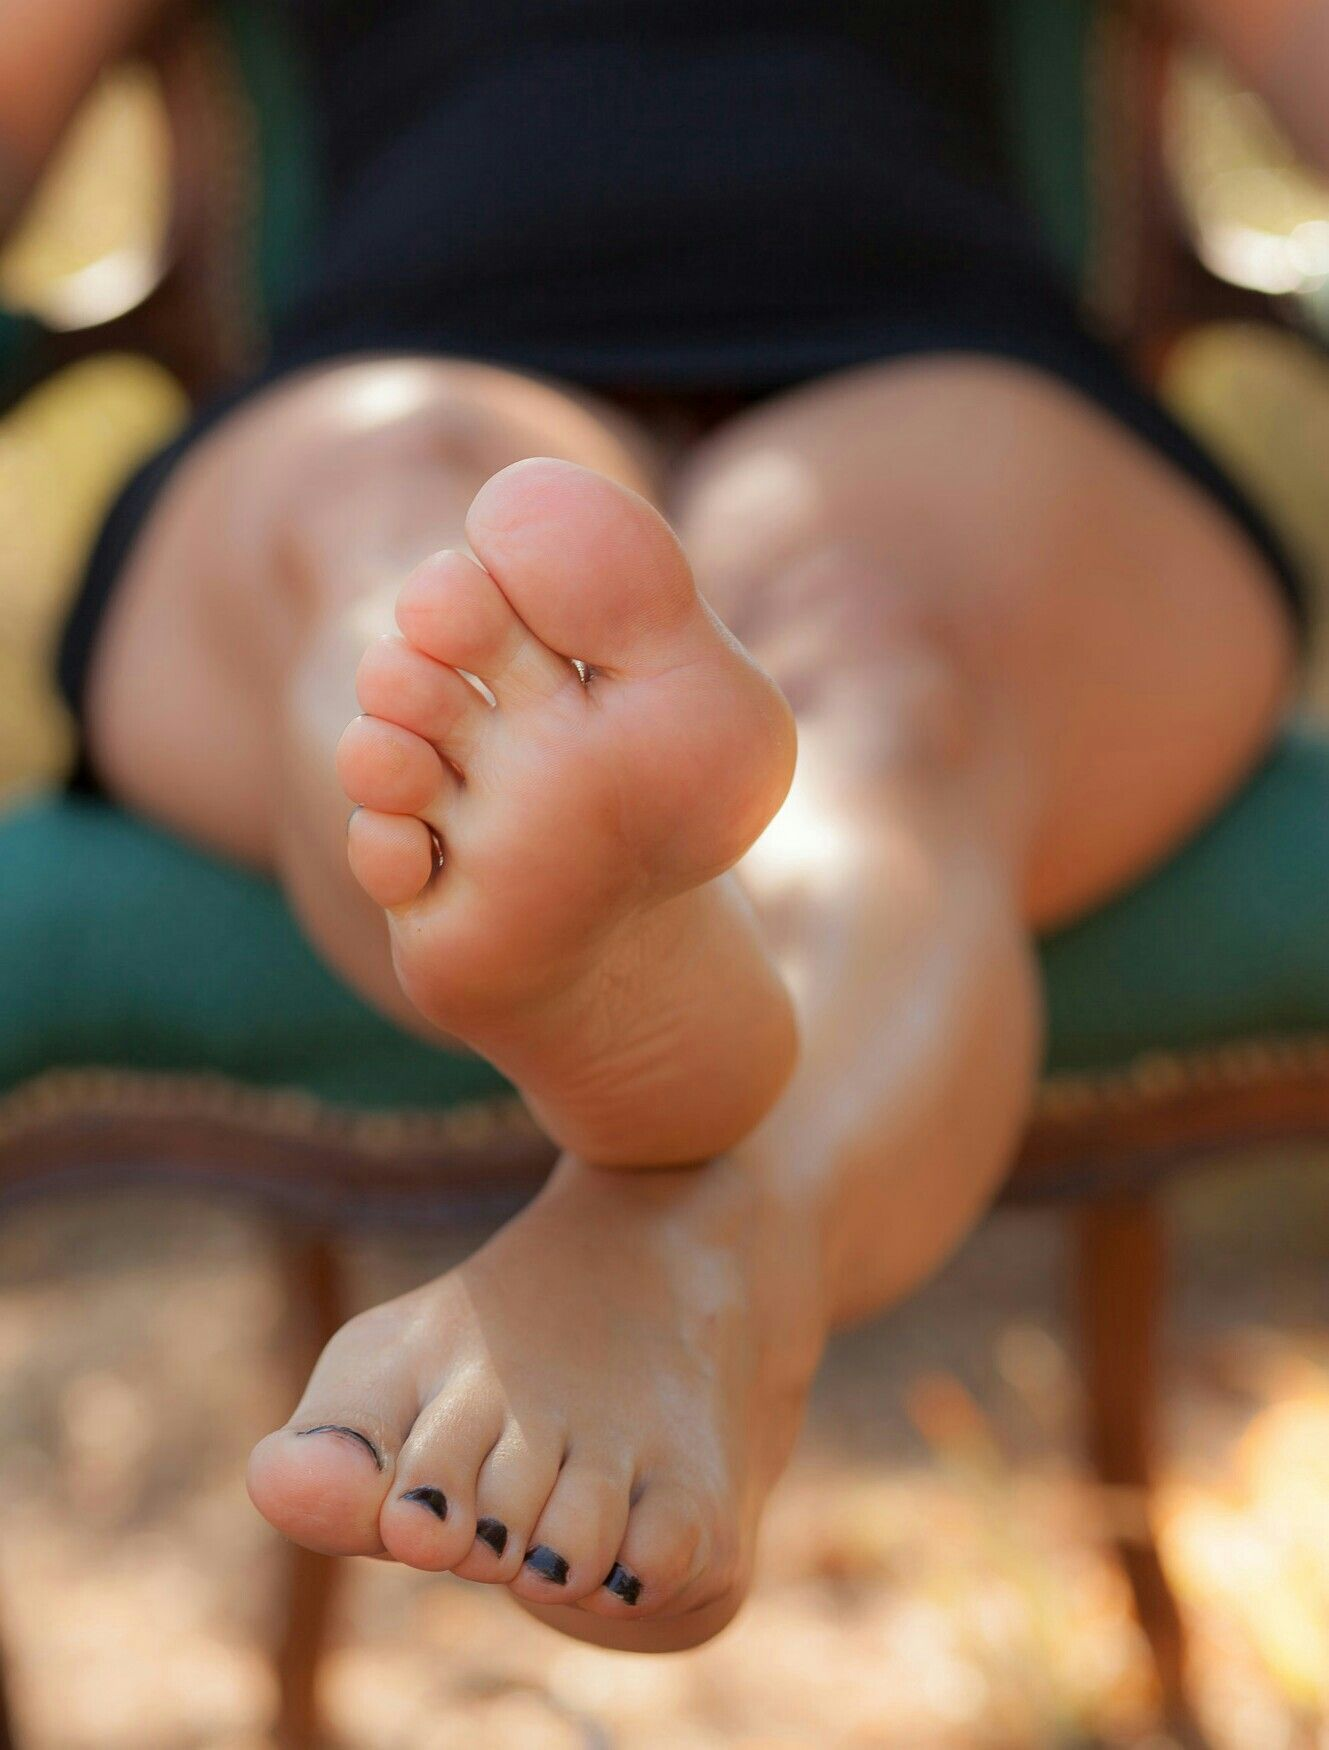 The medical consequences of foot